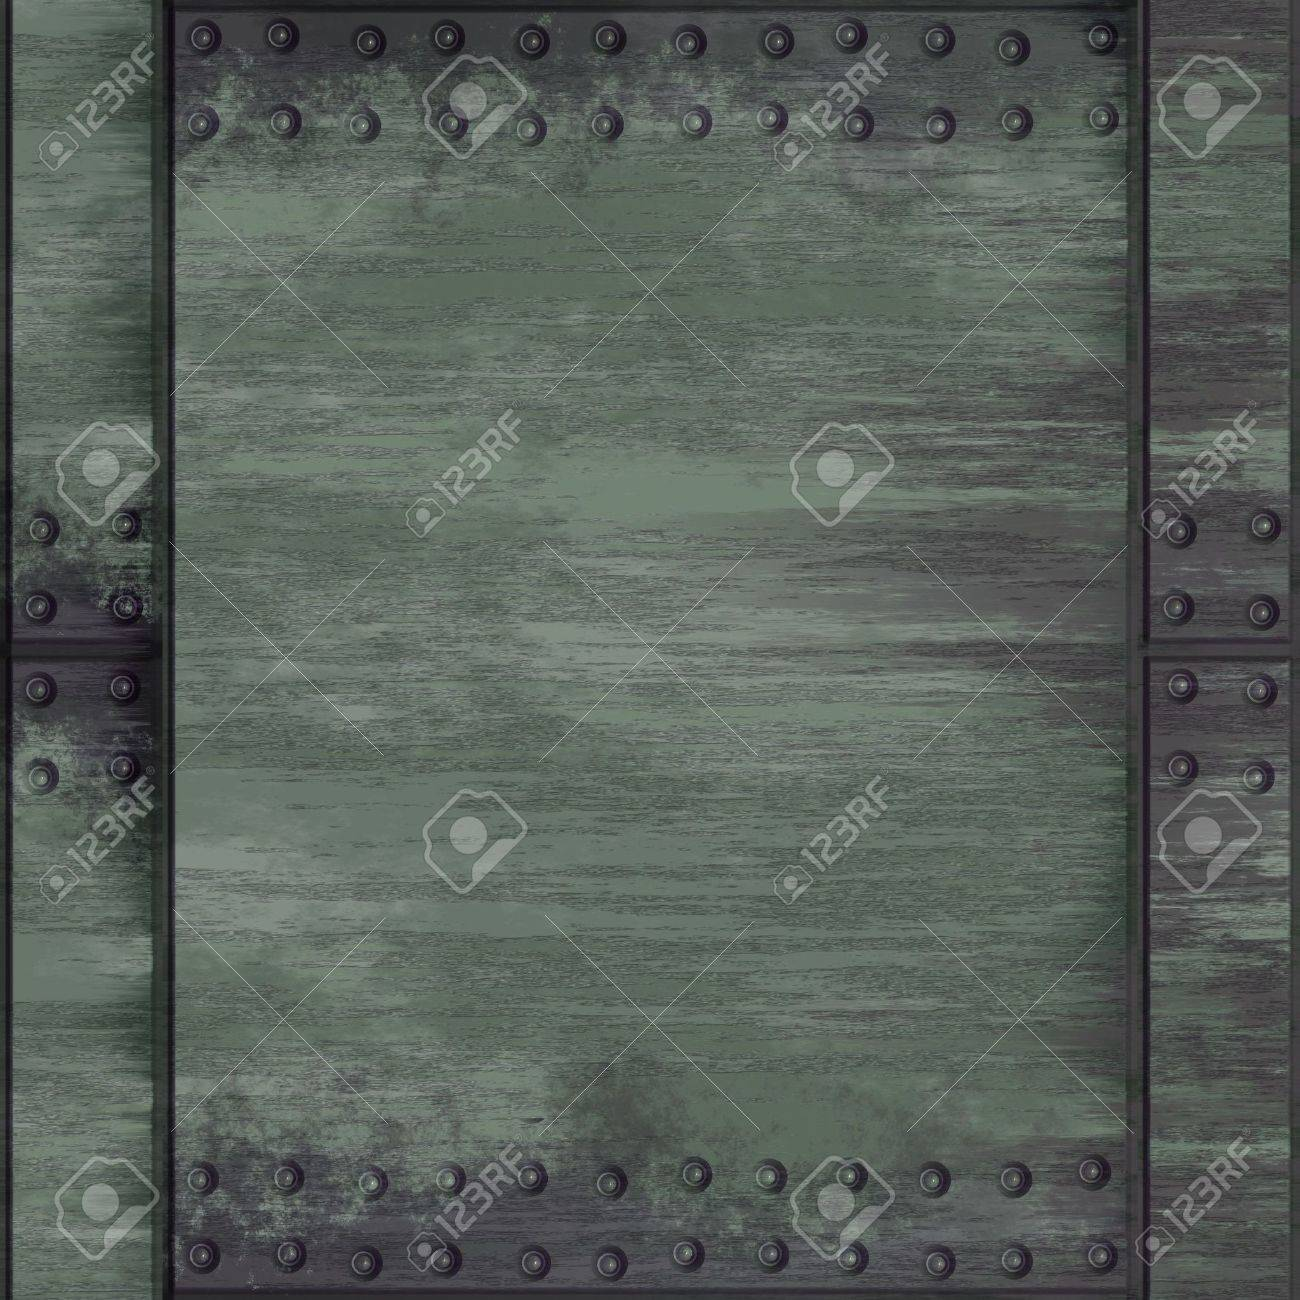 A rivetted steel background. It can be used as a frame or border, or tiled as a seamless pattern. Stock Photo - 821863